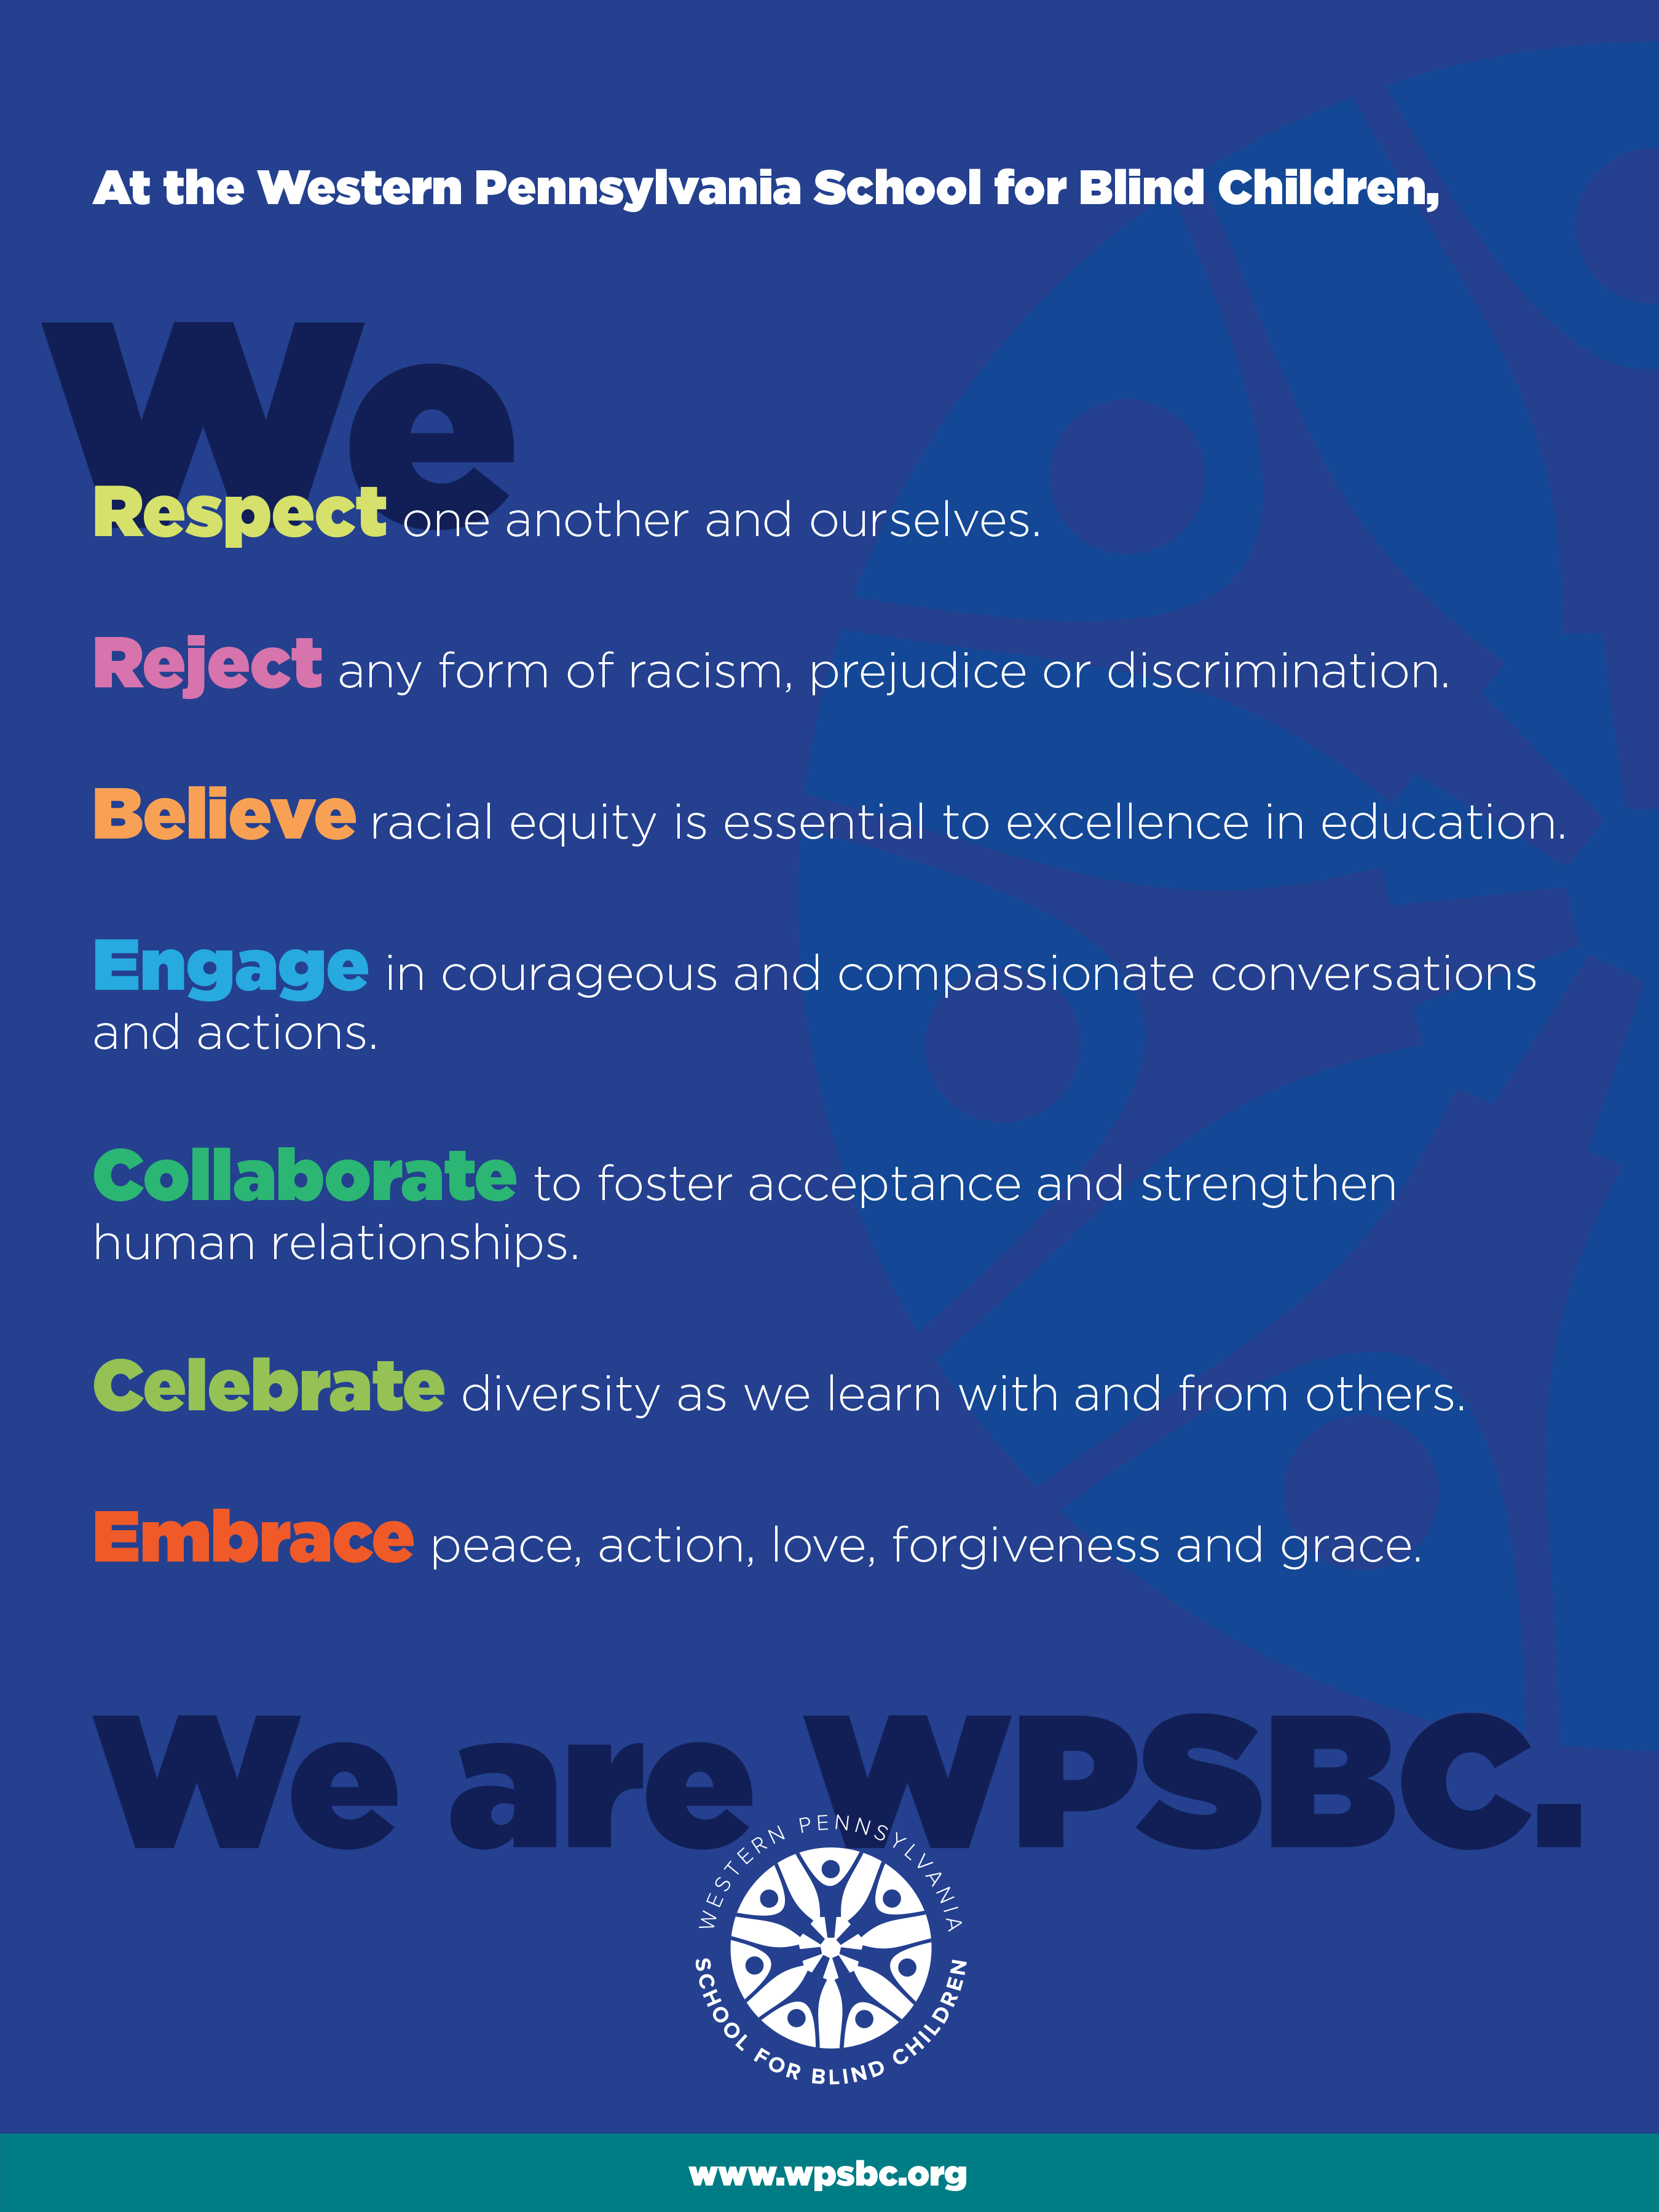 A graphic image that reads, 'At the Western Pennsylvania School for Blind Children, we respect one another and ourselves, reject any form of racism, prejudice or discrimination, believe racial equity is essential to excellence in education, engage in courageous and compassionate conversations and actions, collaborate to foster acceptance and strengthen human relationships, celebrate diversity as we learn with and from others, embrace peace, action, love, forgiveness and grace. We are WPSBC.'